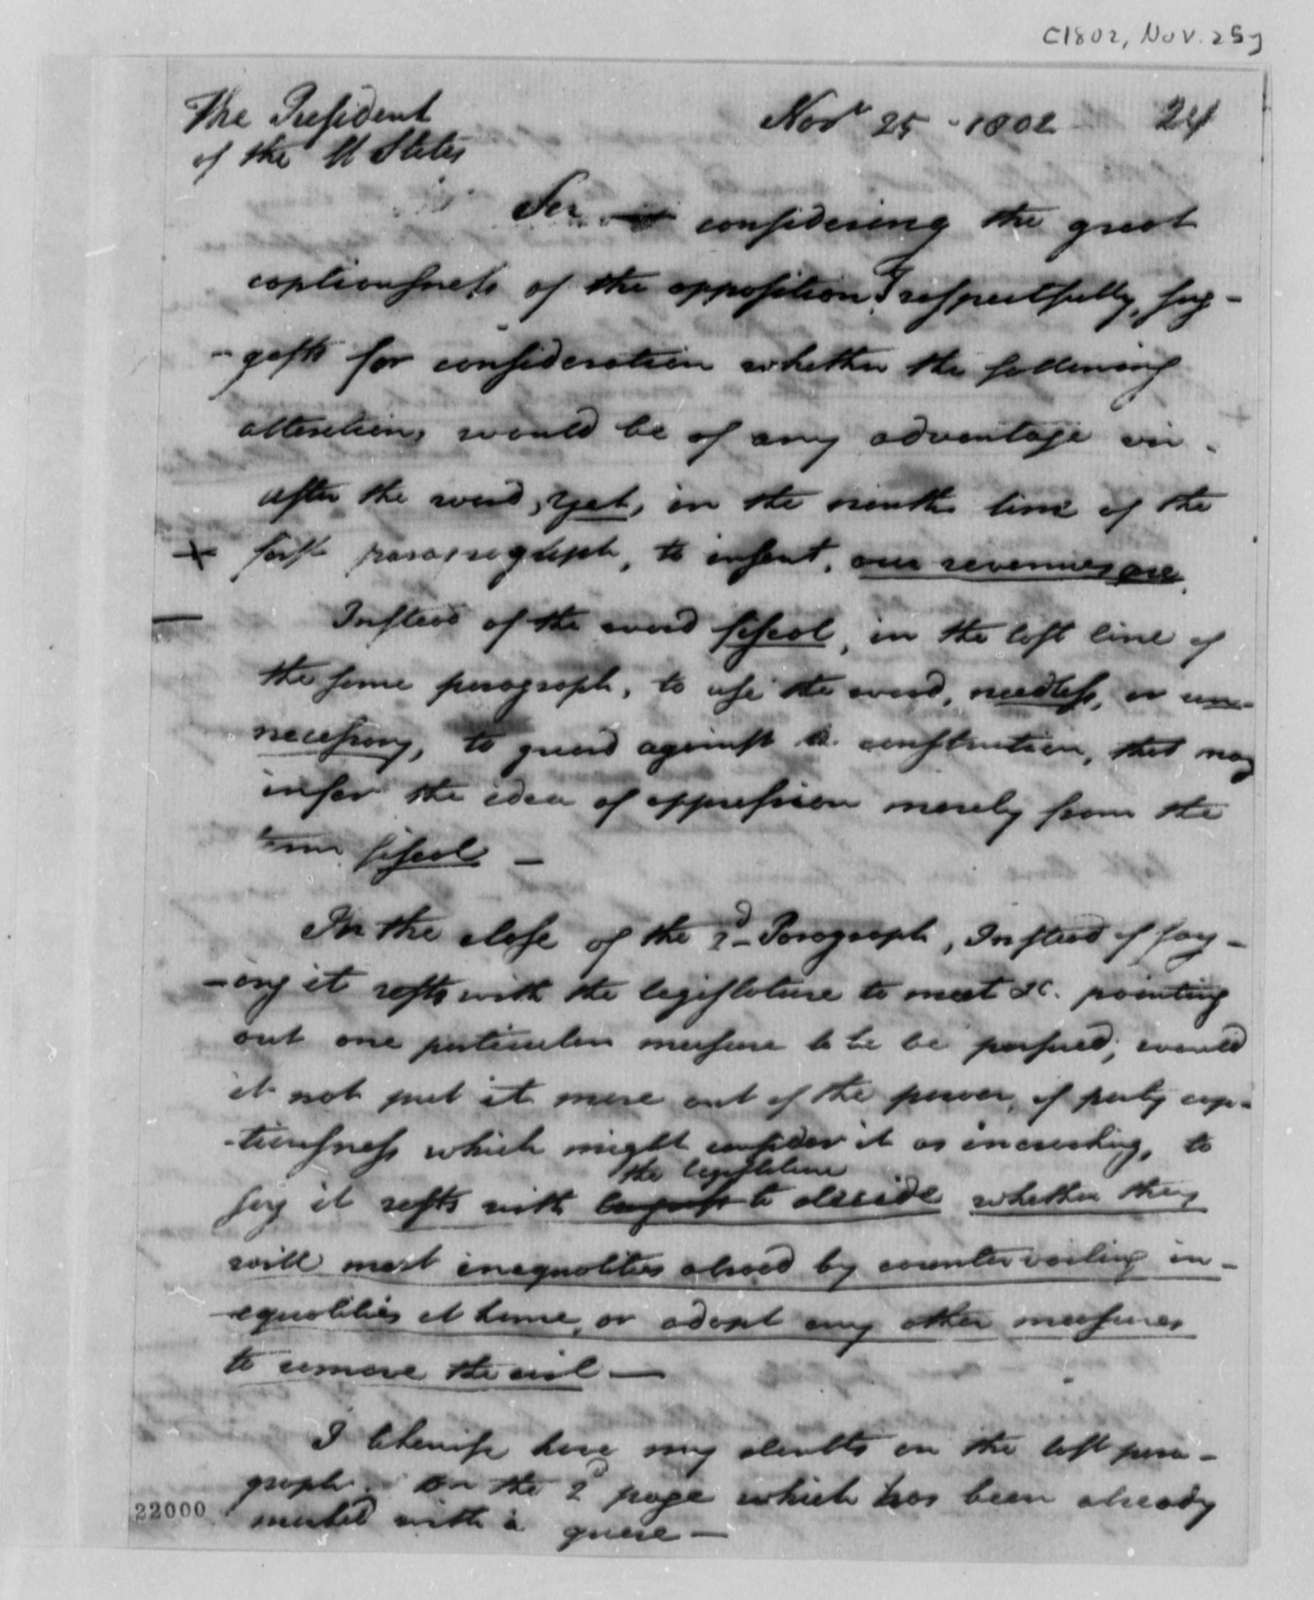 Levi Lincoln to Thomas Jefferson, November 25, 1802